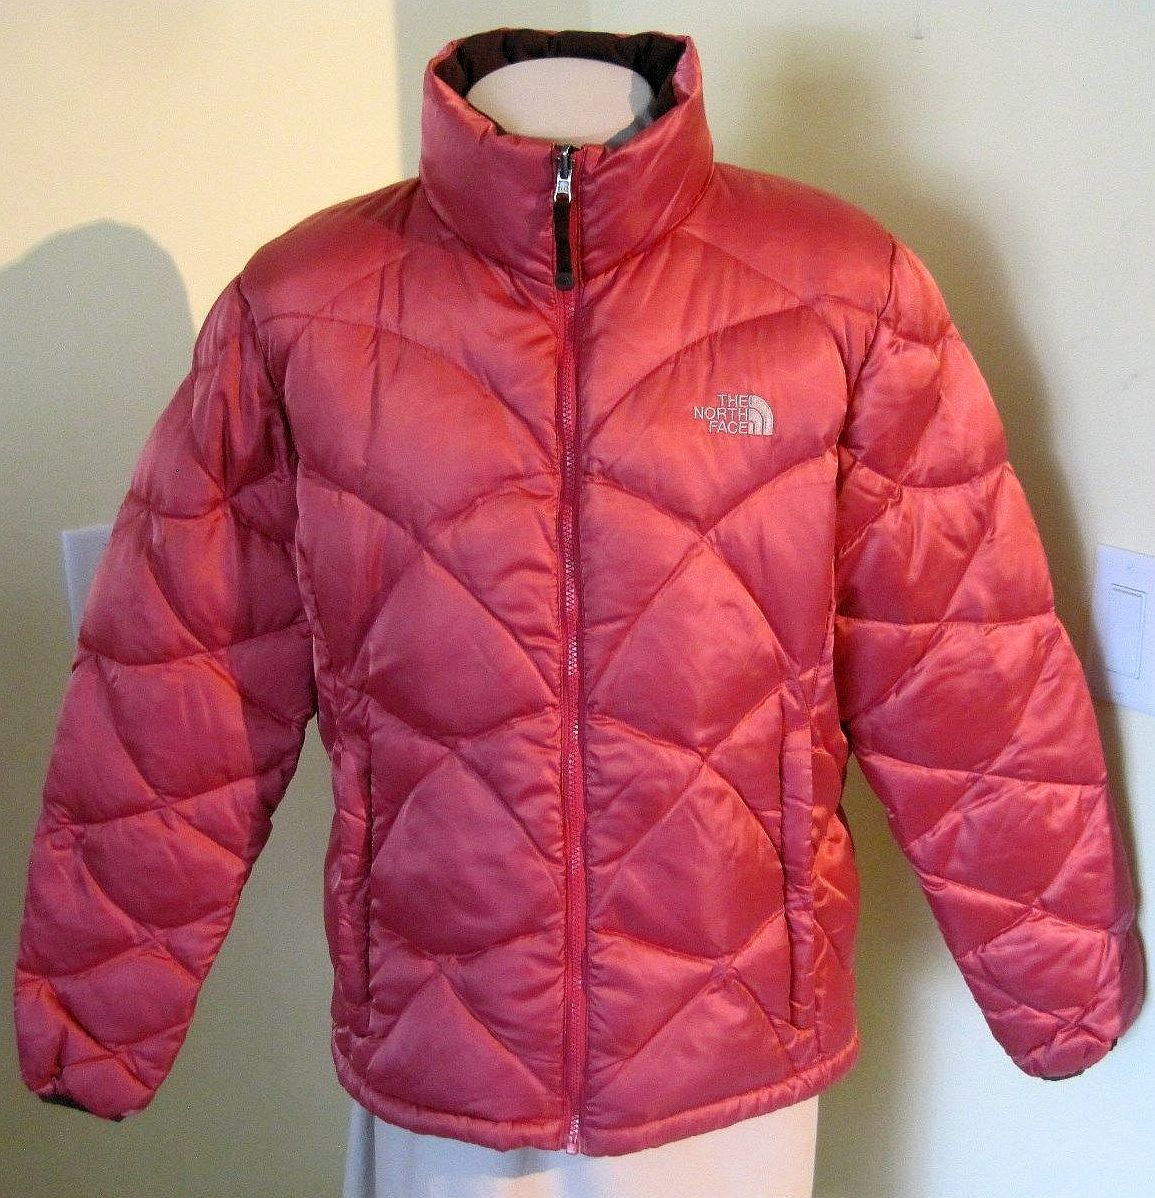 The North Face Ladies Jacket (Pre-owned Women's 550 Goose Down Red ...